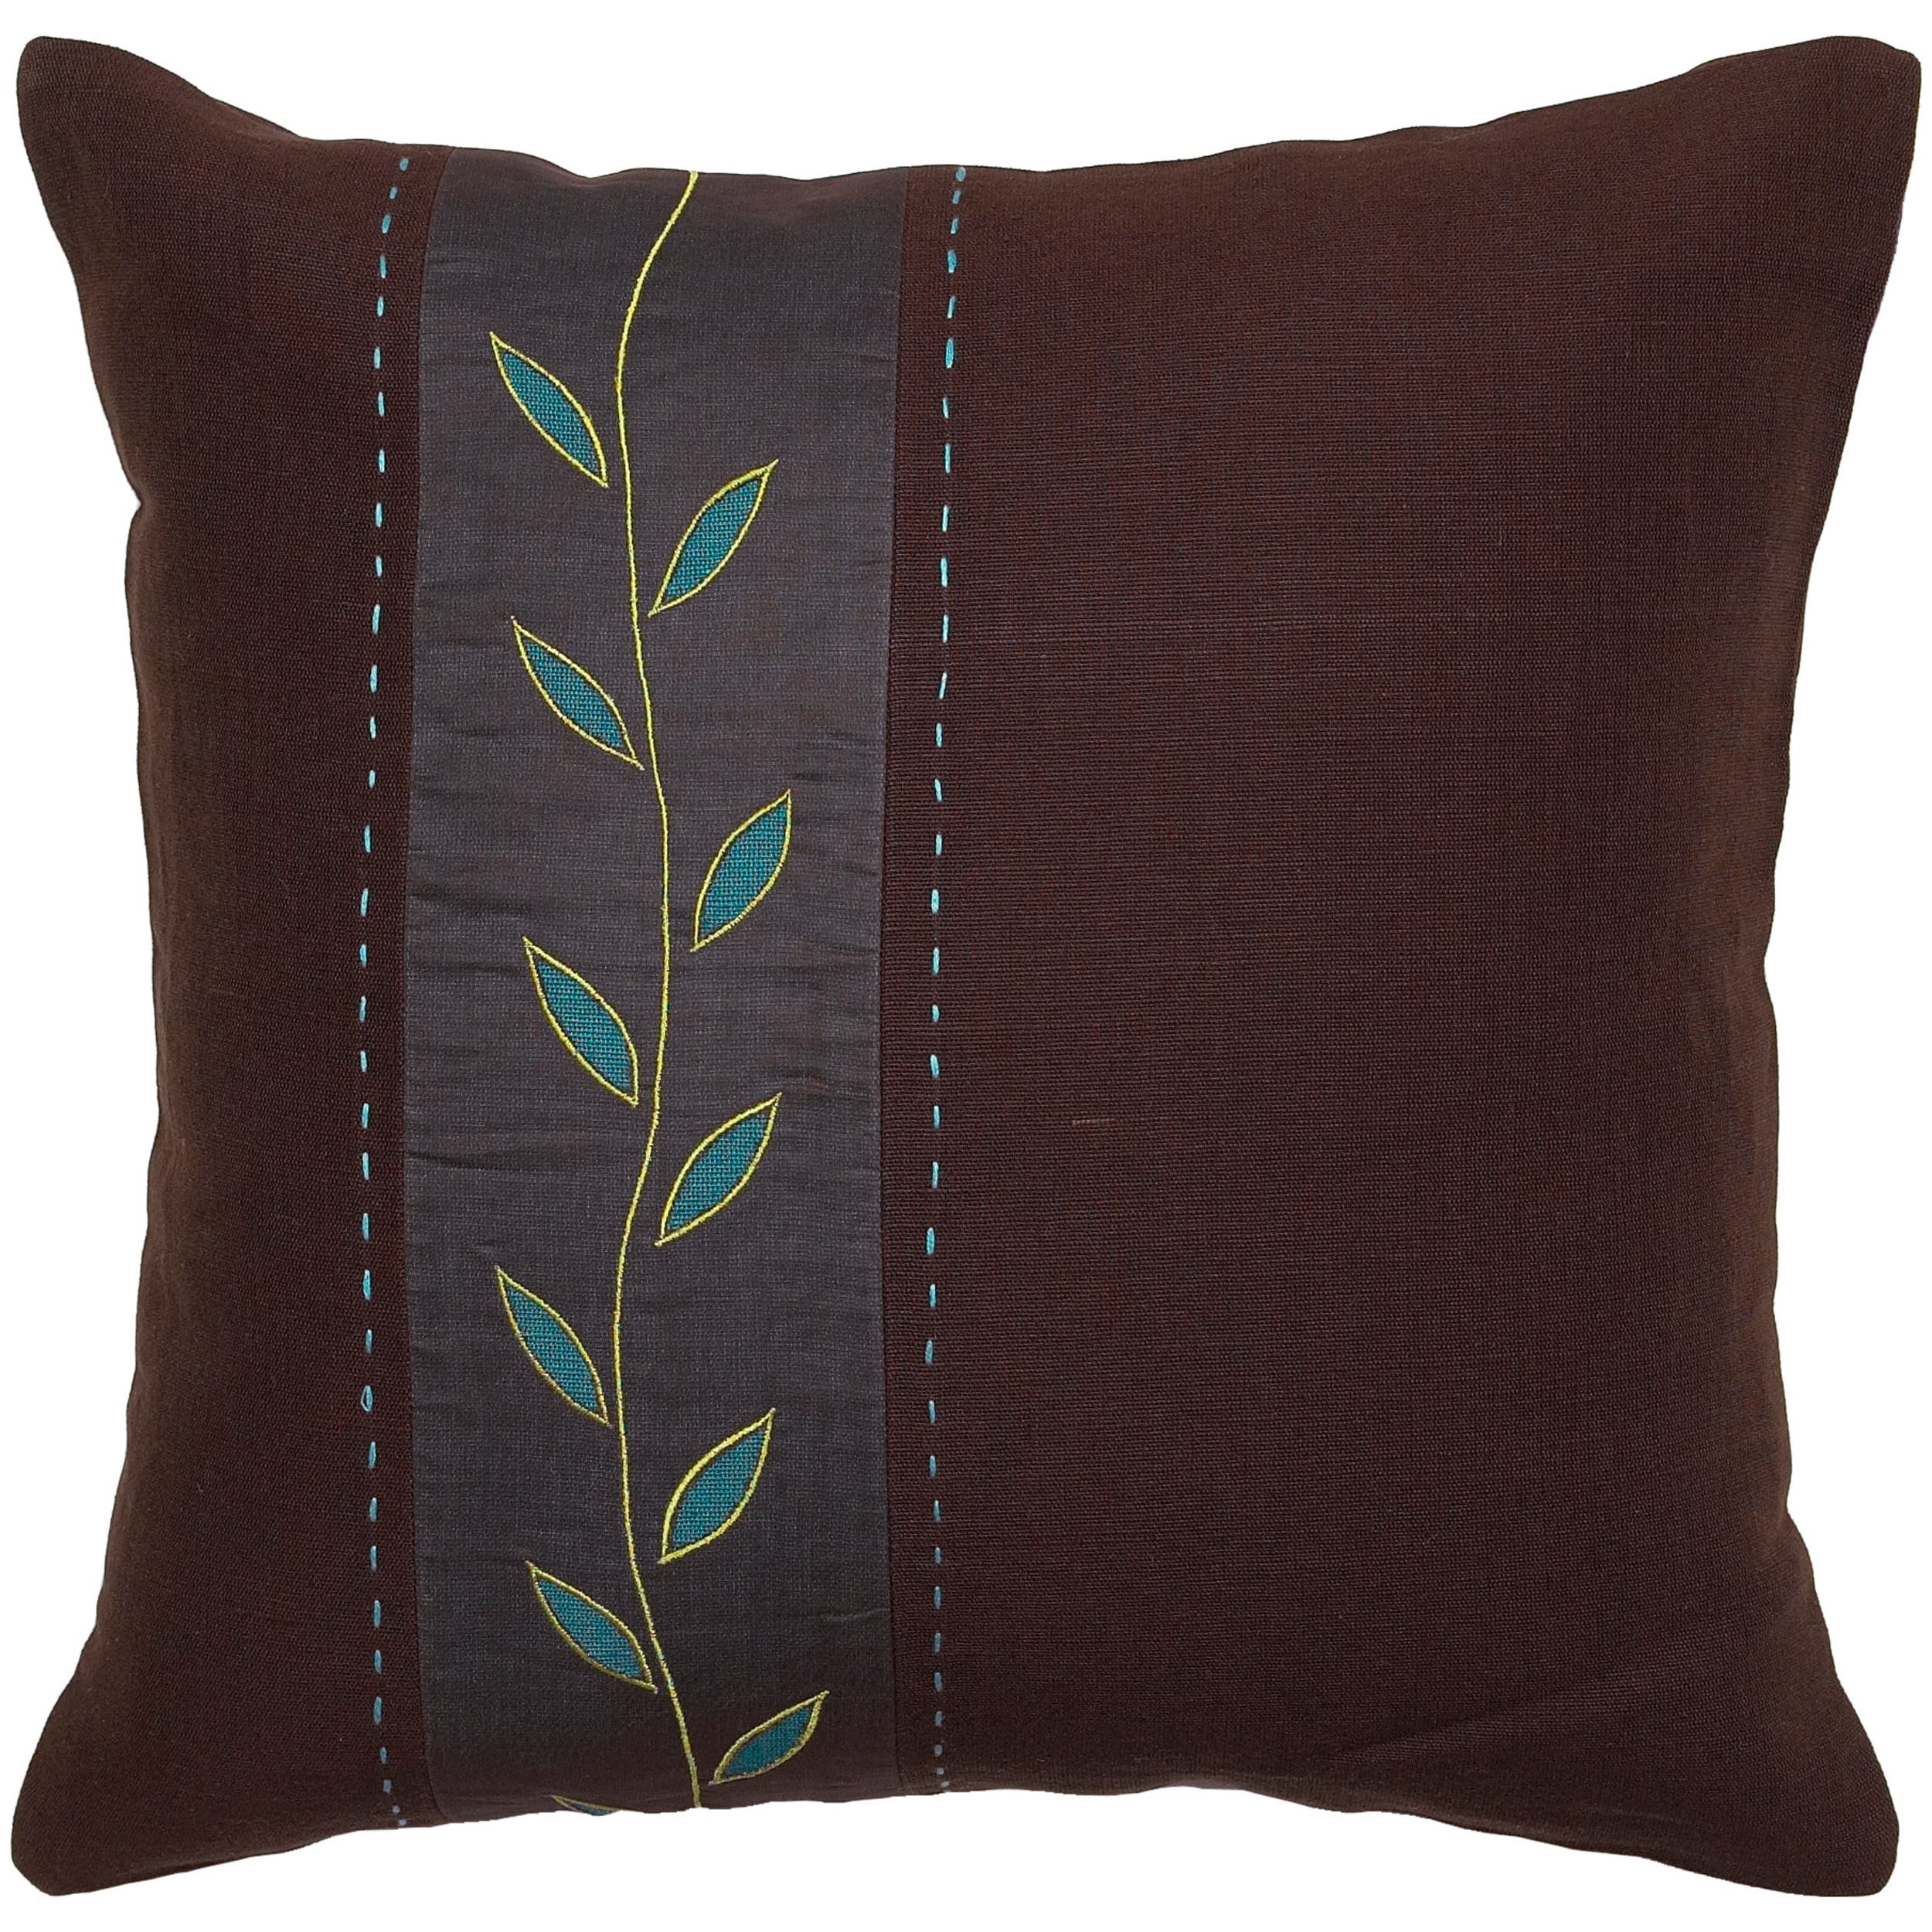 Mattie Brown/ Green Vine Decorative Pillow